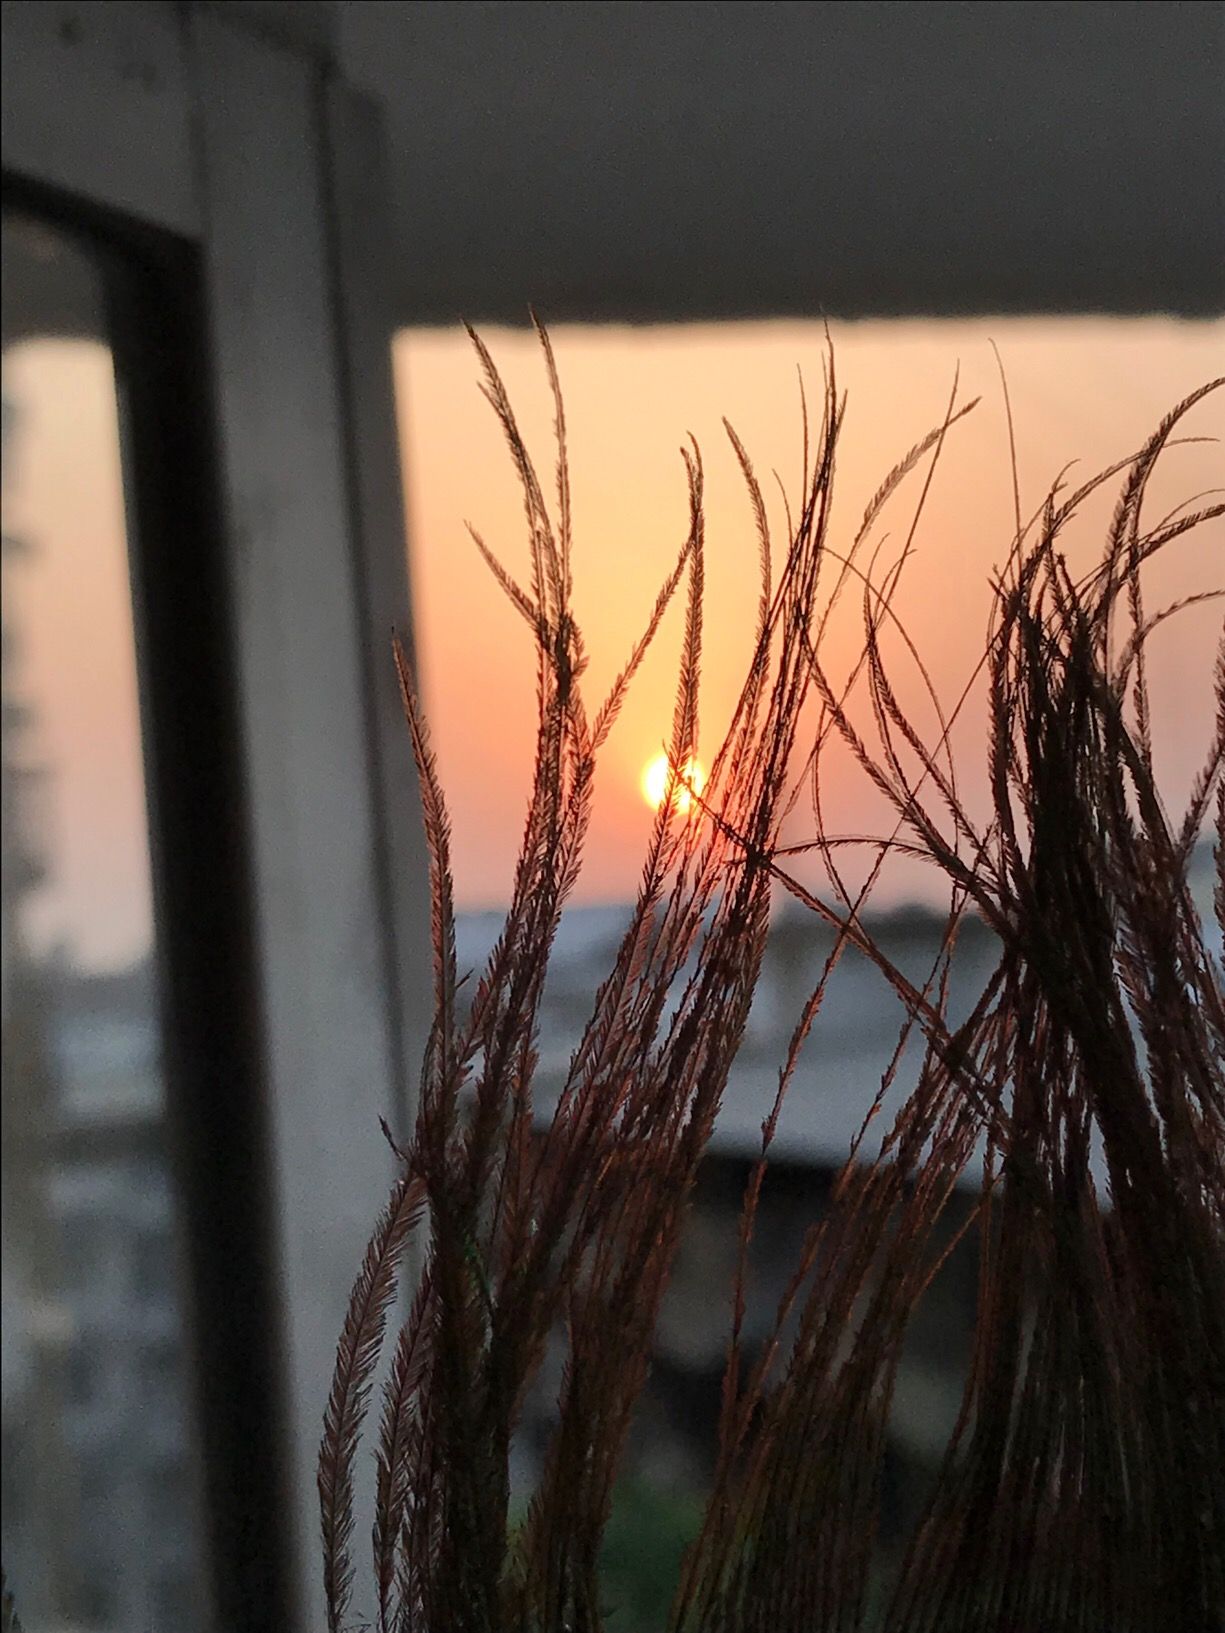 I found a peacock feather from my book, which i used as bookmark. While watching sunset I used feather to get a perfect click from my window.